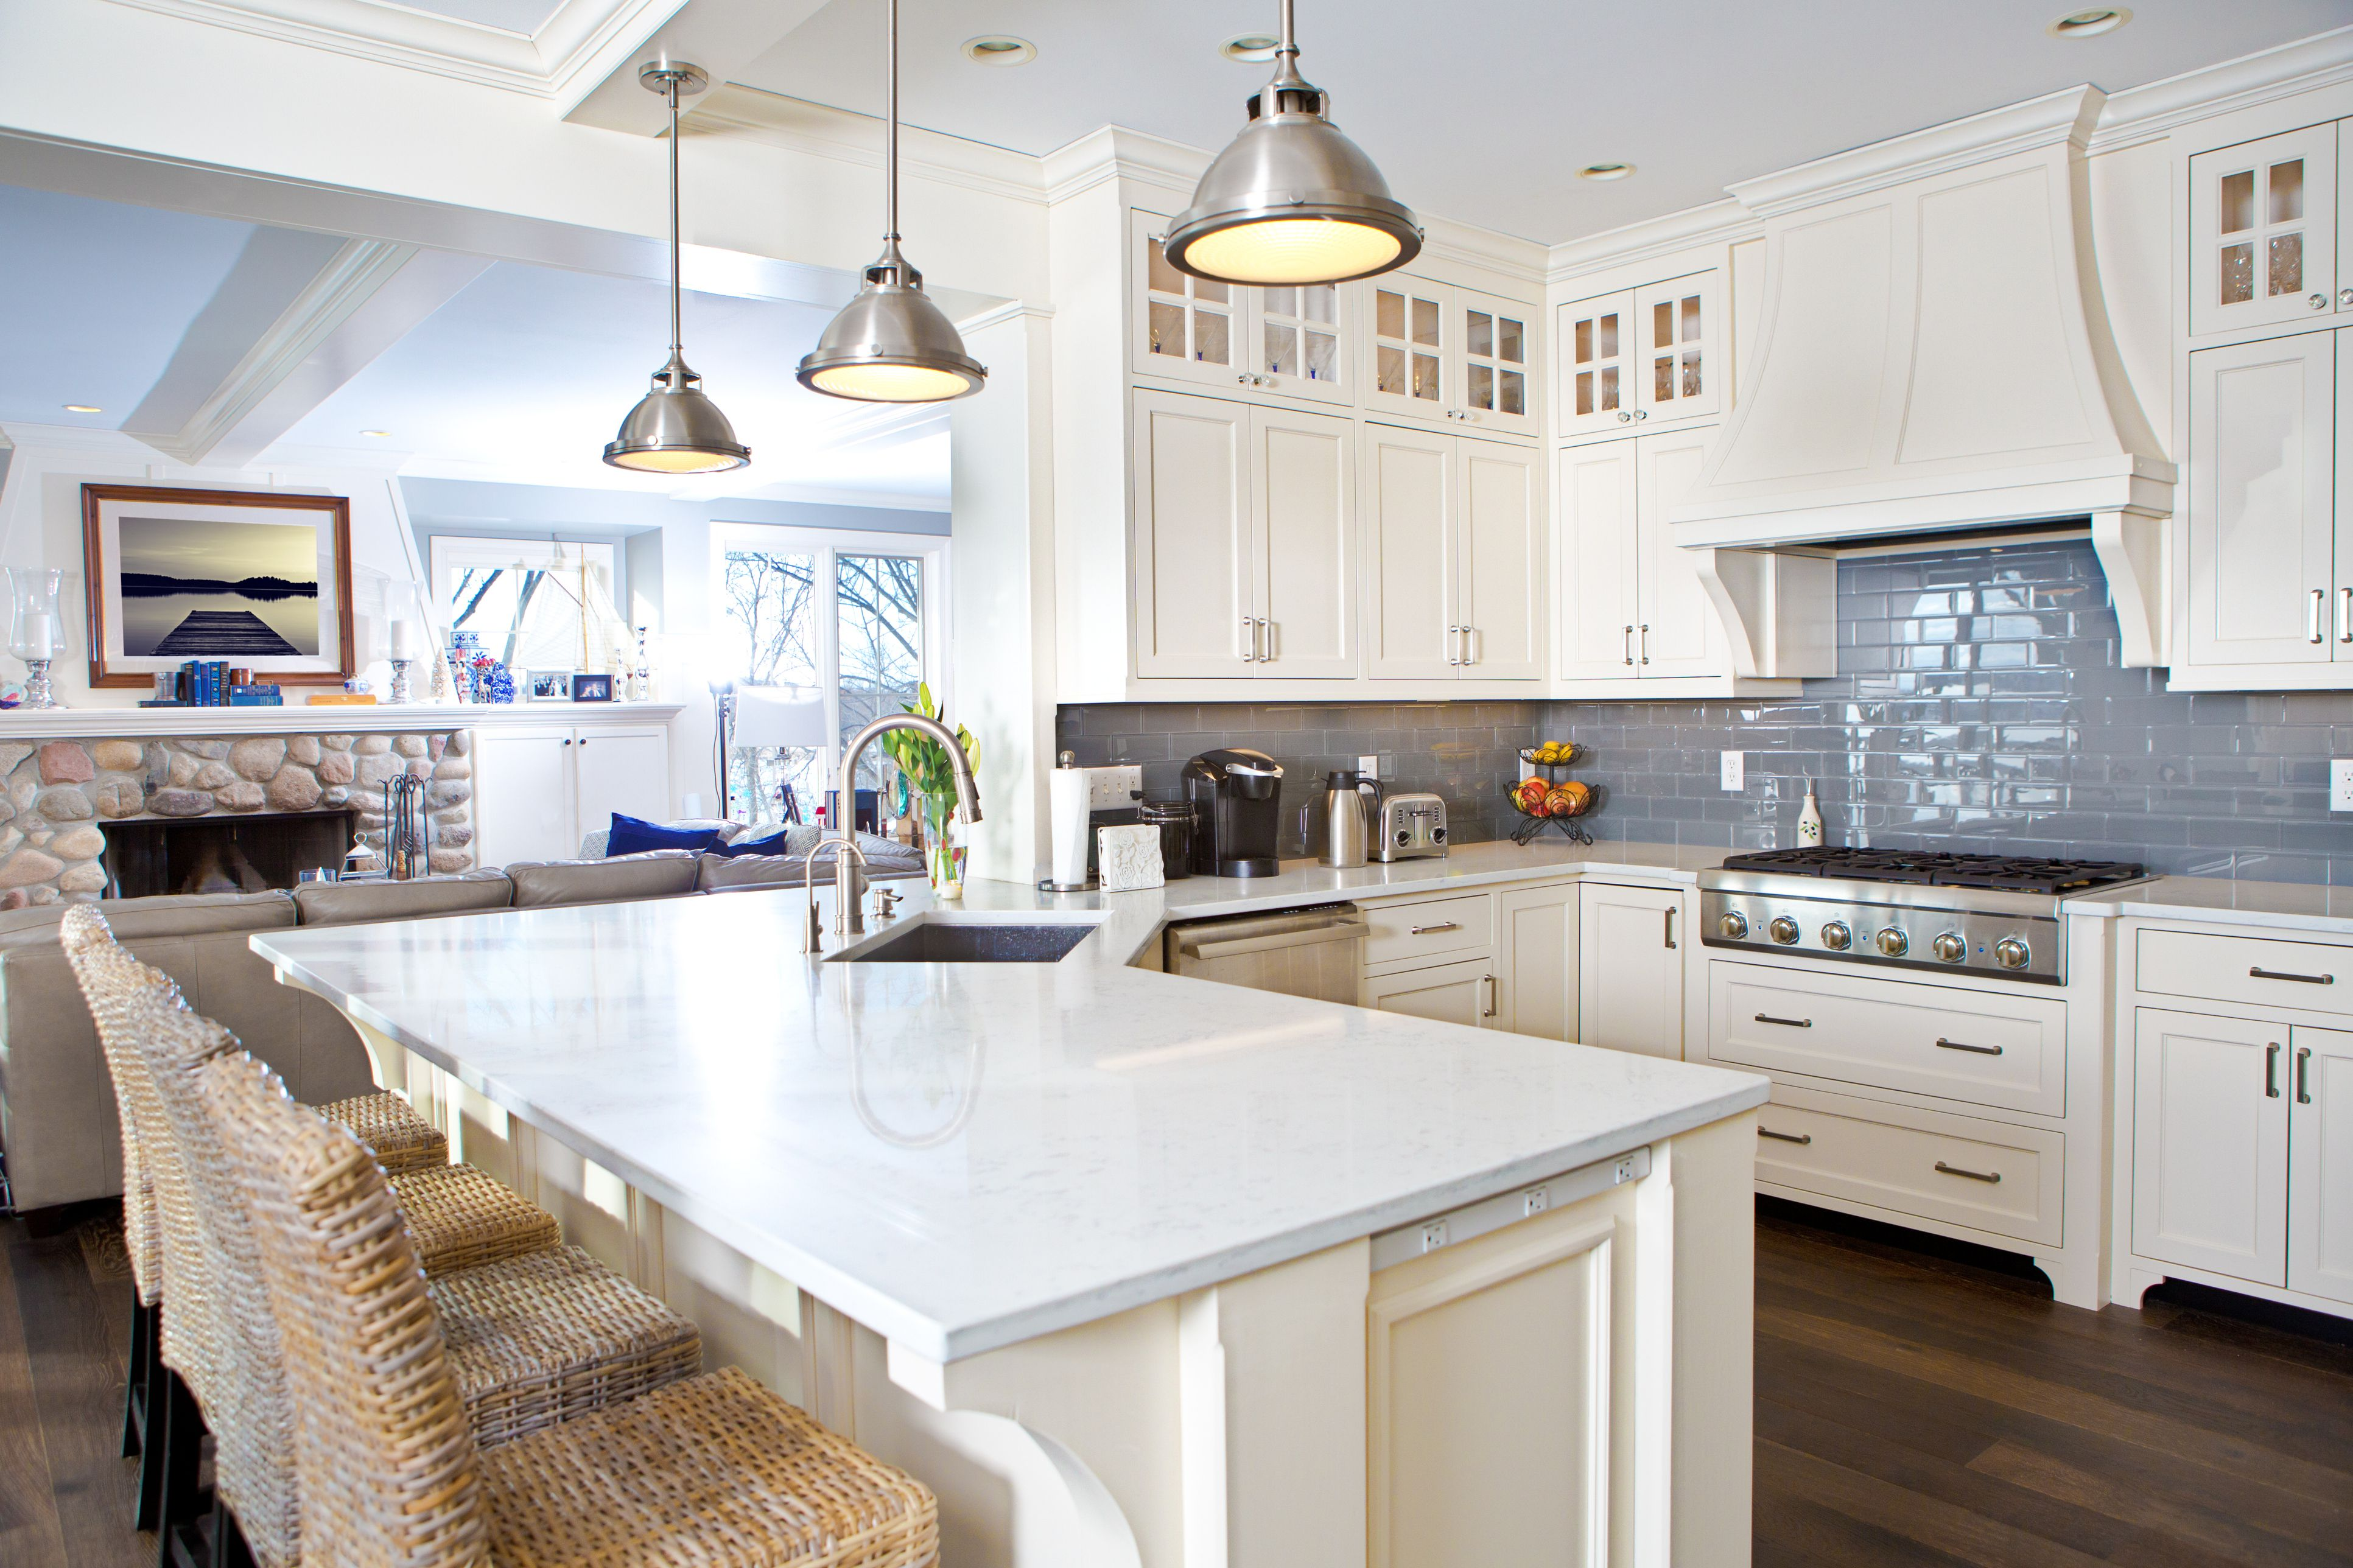 Solid Surface vs. Quartz Countertop